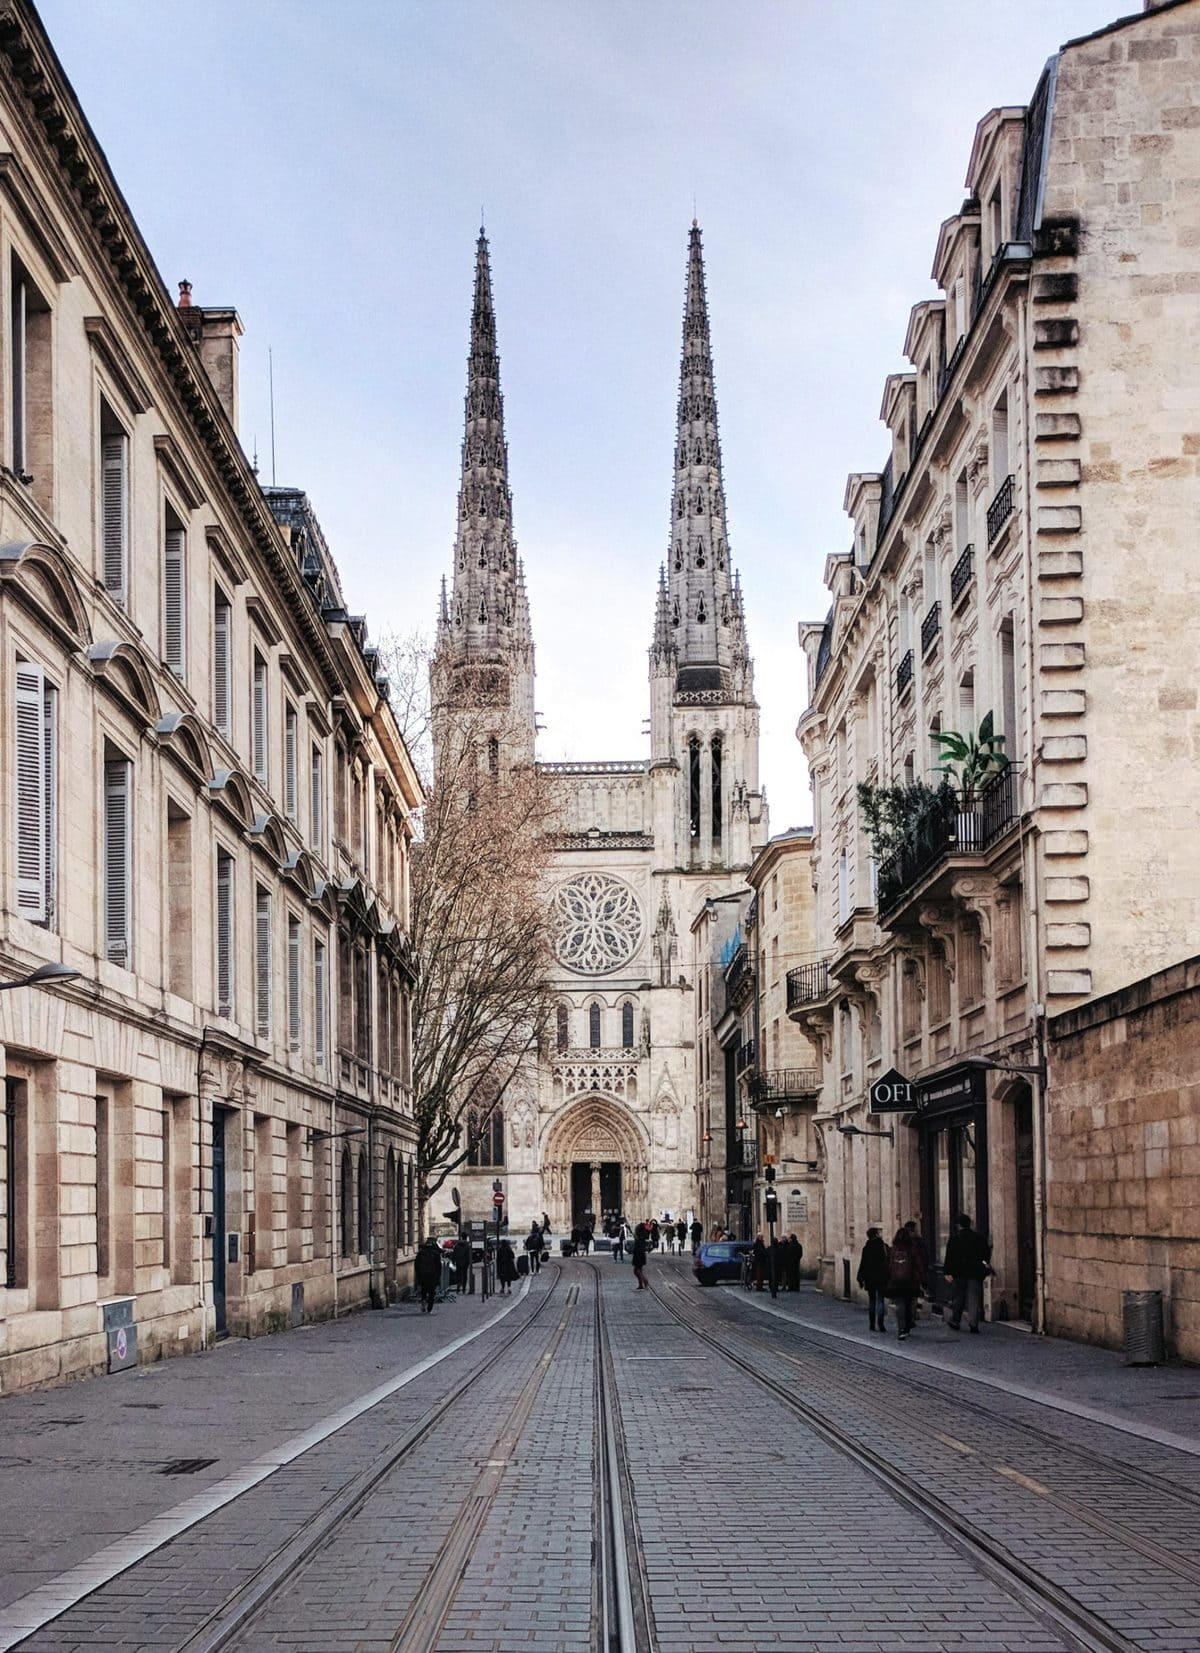 View of Bordeaux Cathedral from the street with buildings framing the cathedral perfectly